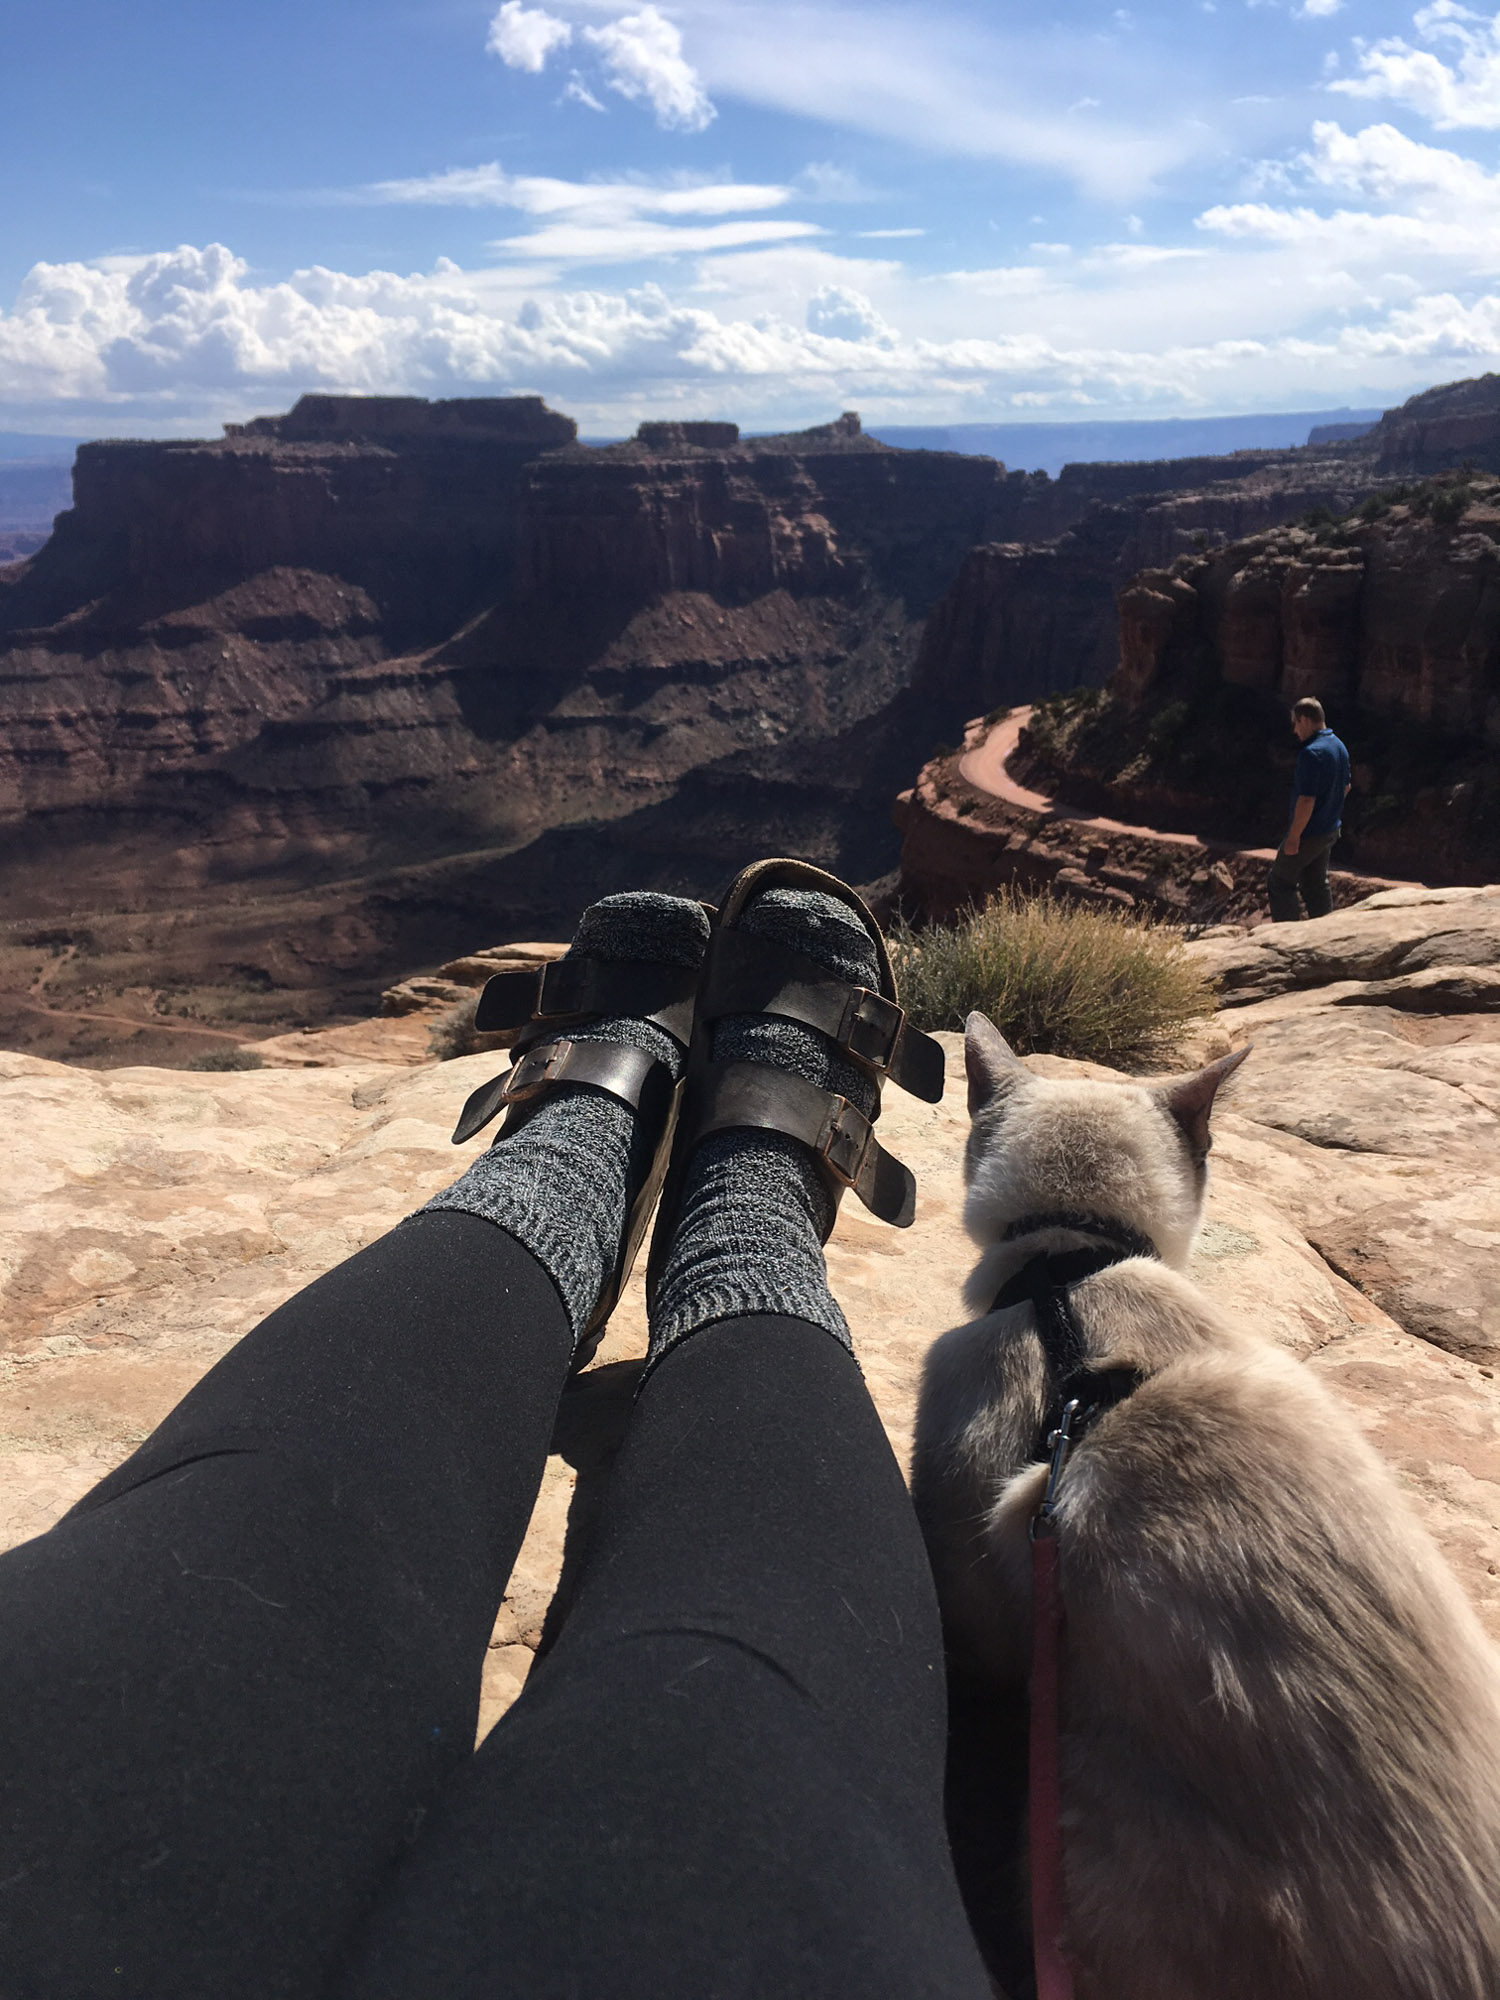 Alexis and her cat in national park